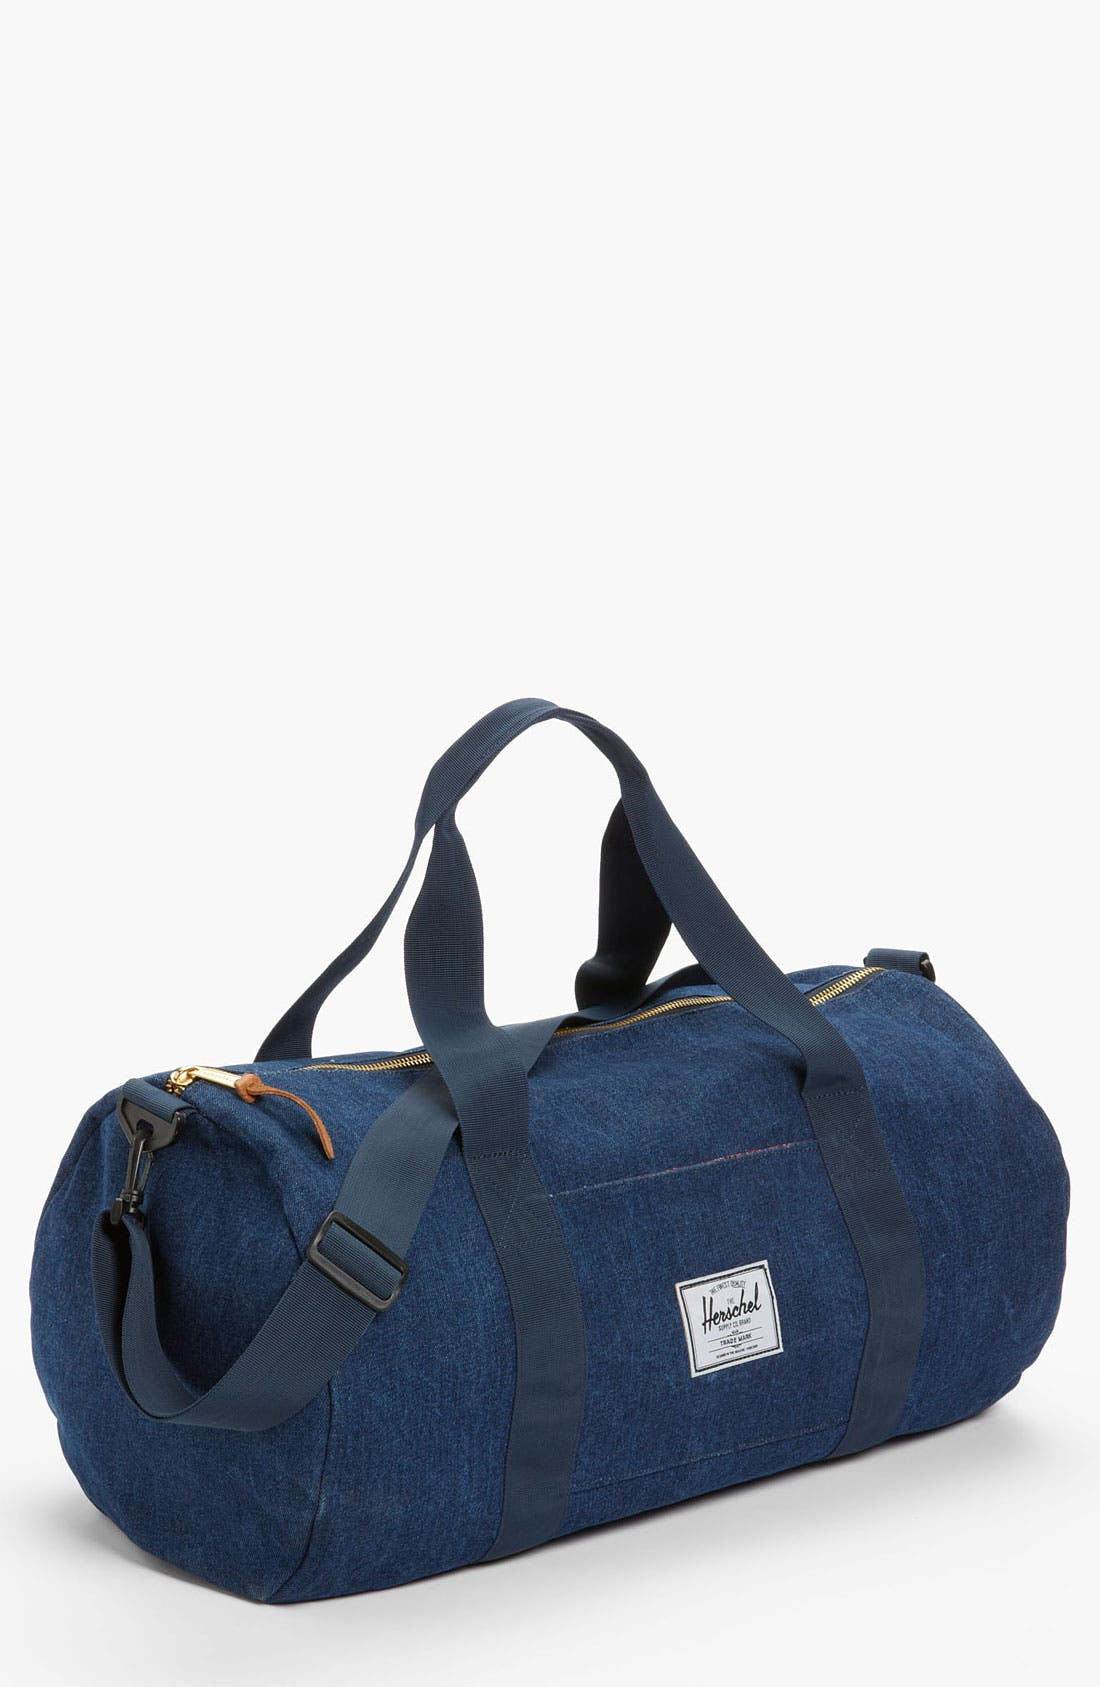 Alternate Image 1 Selected - Herschel Supply Co. 'Sutton - Denim Collection' Duffel Bag